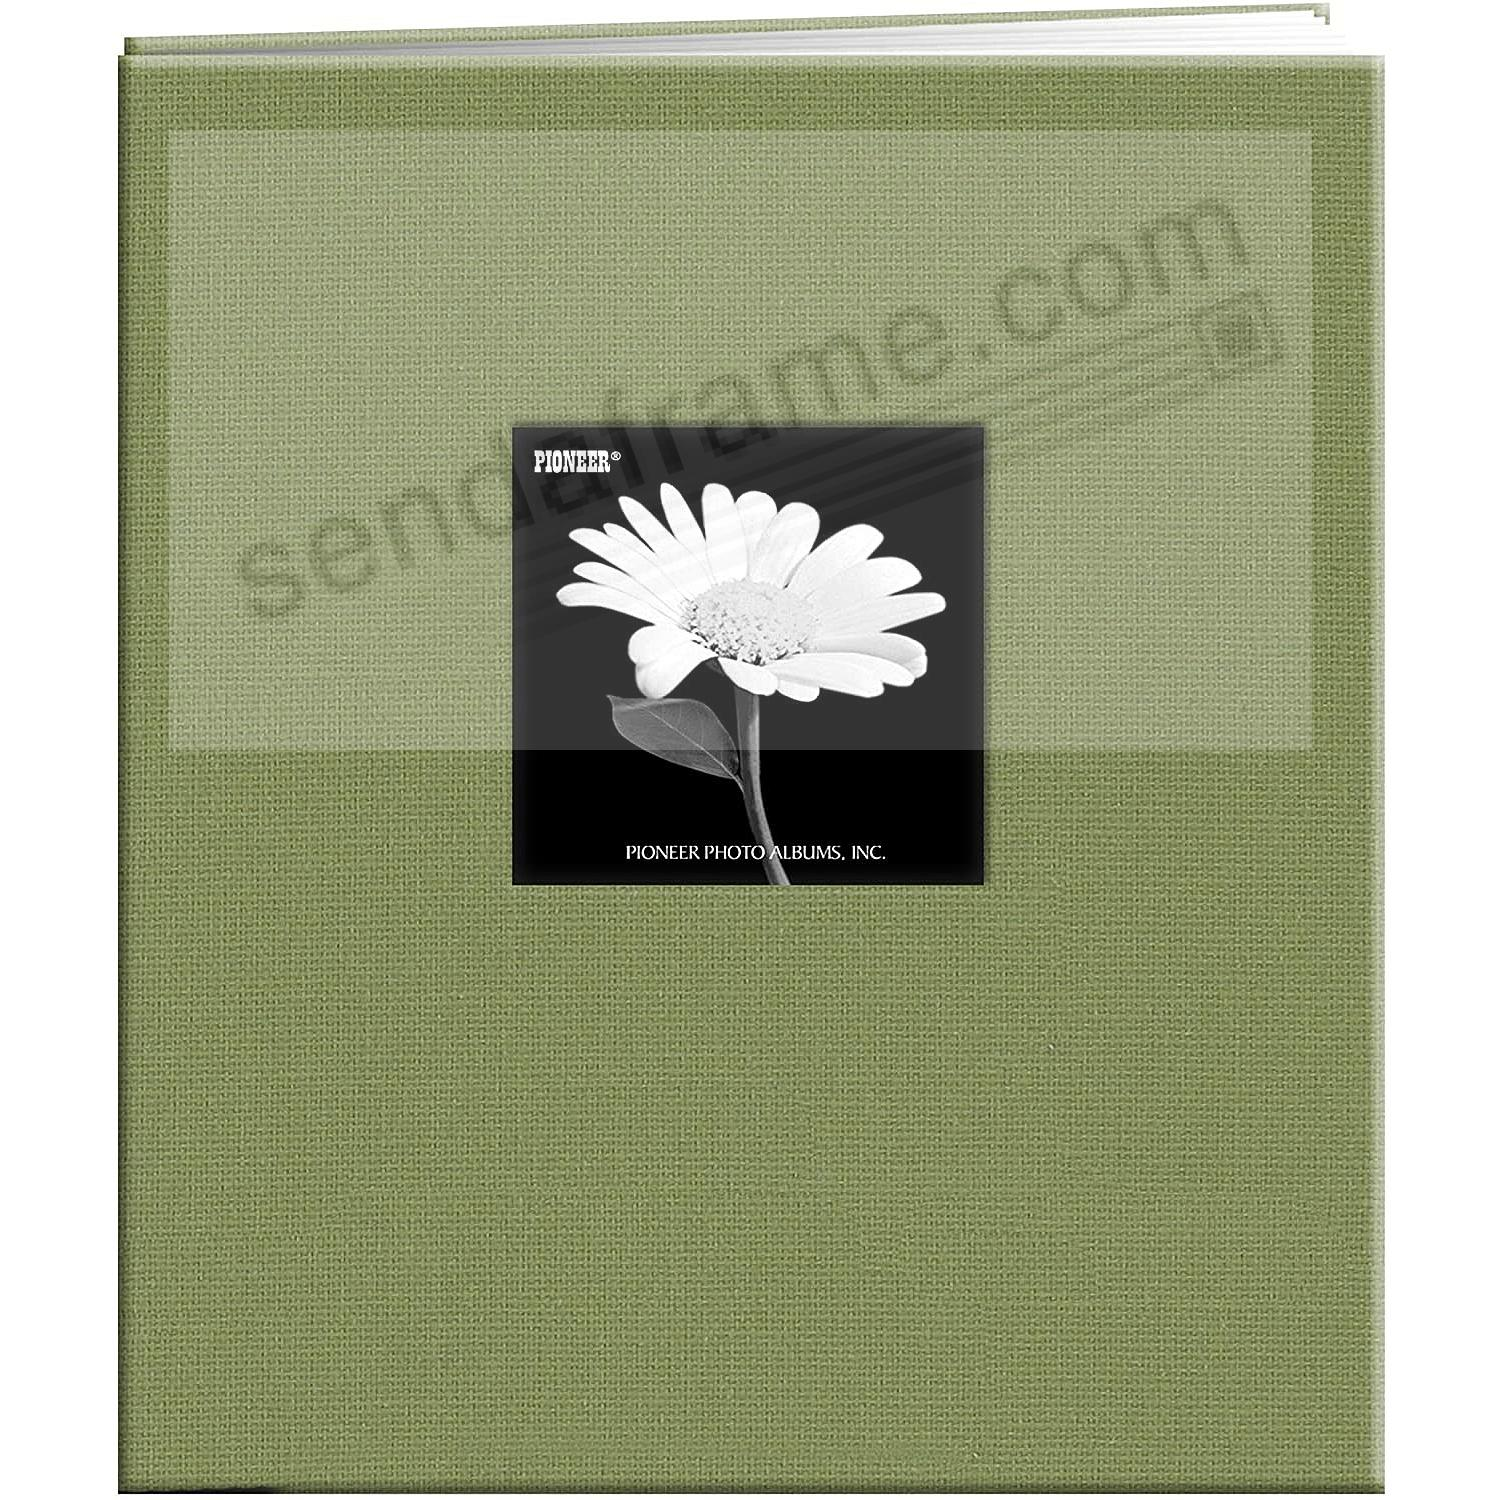 SAGE-GREEN E-Z LOAD 8½x11 Fabric Frame Cover Scrapbook by Pioneer®